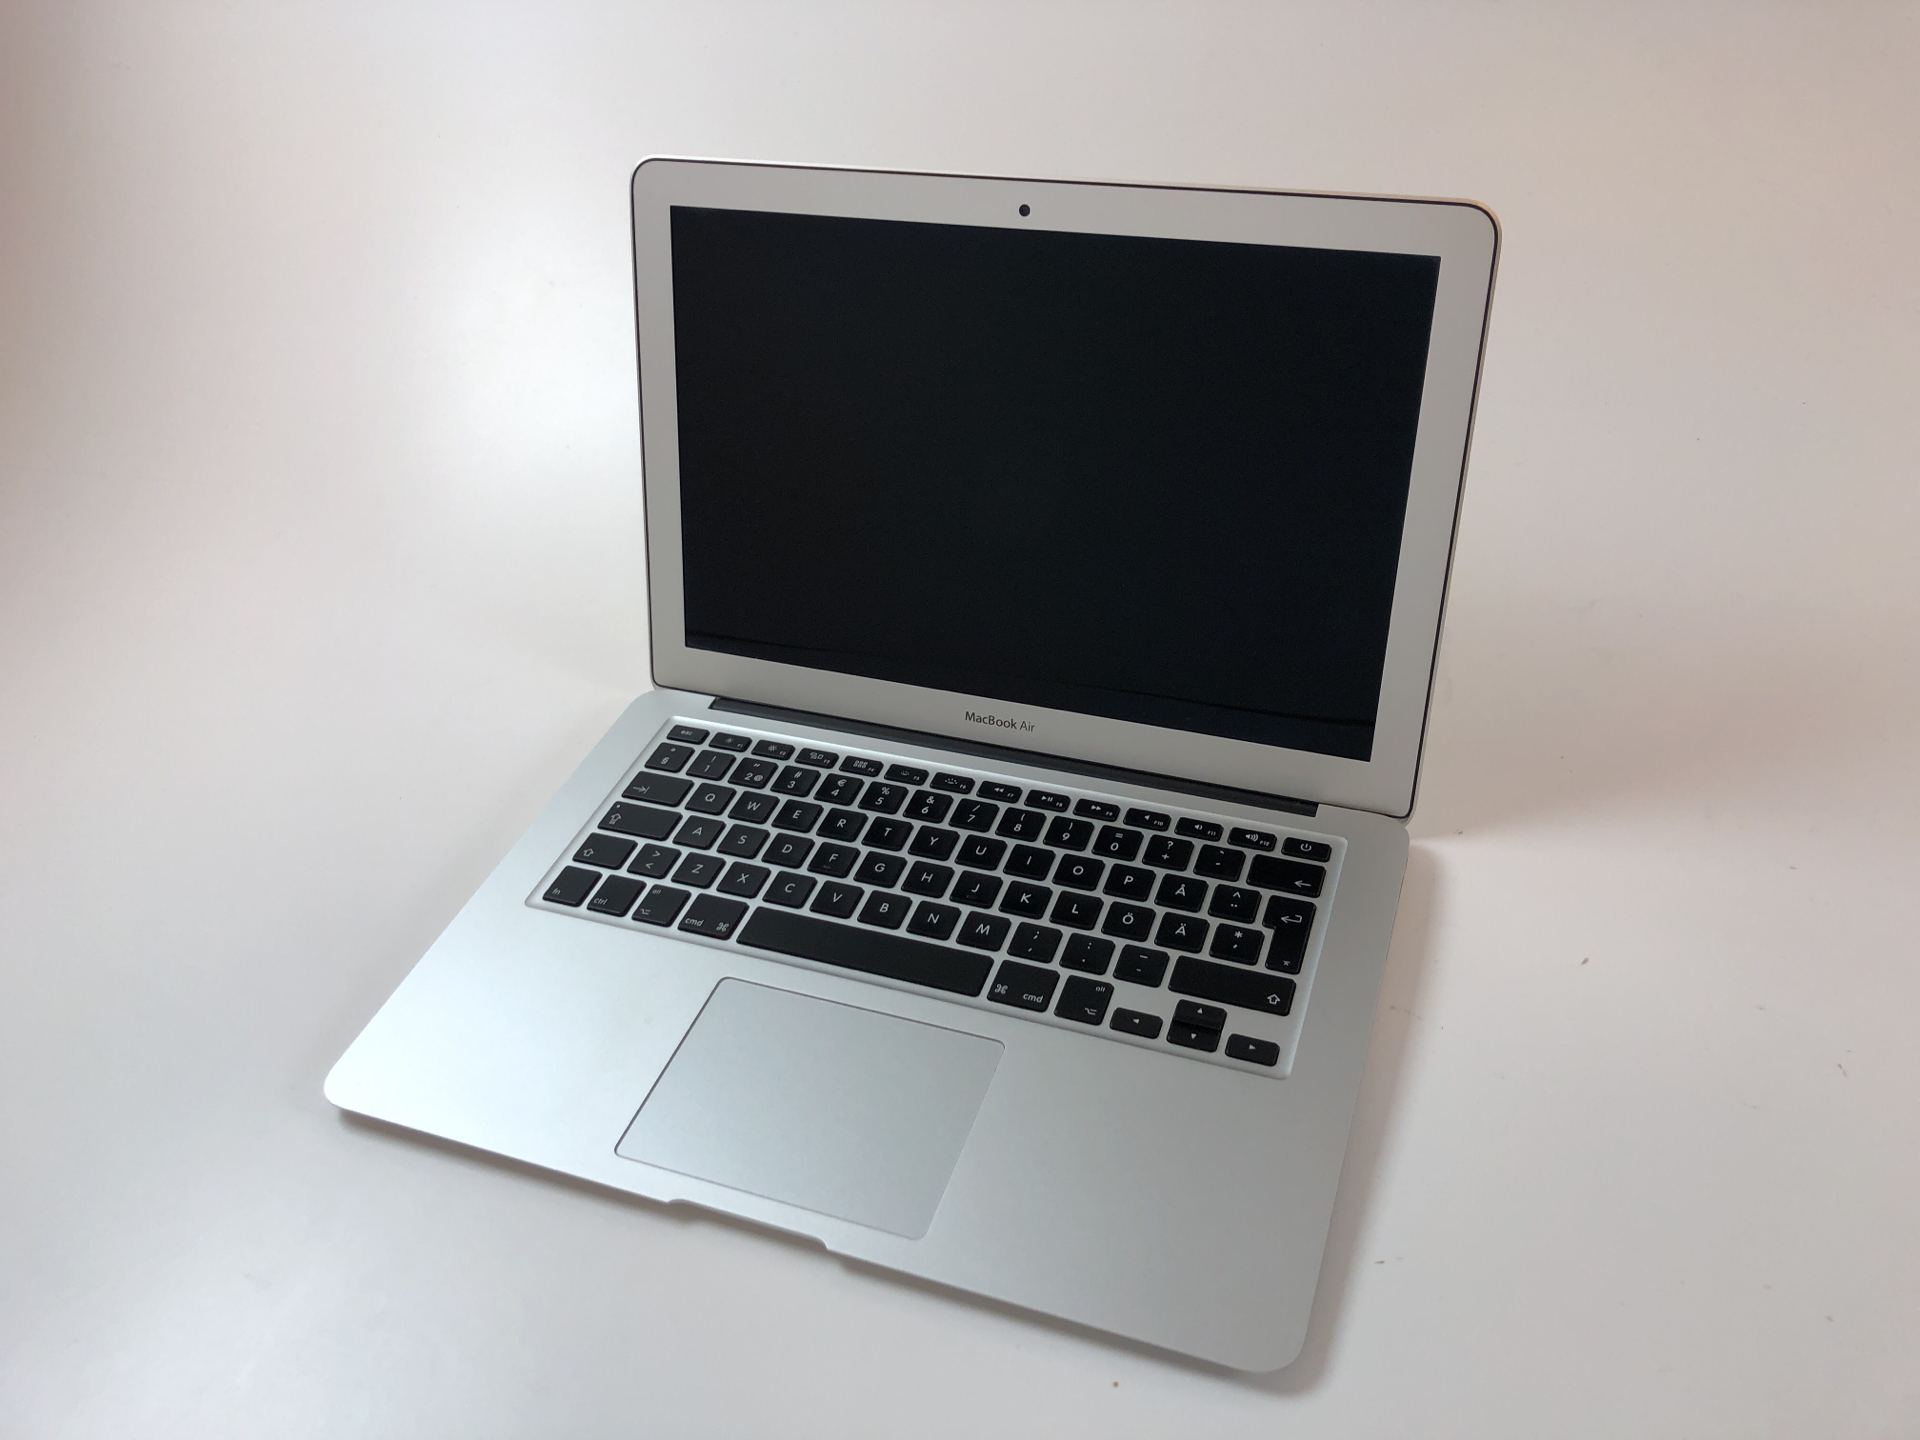 "MacBook Air 13"" Mid 2013 (Intel Core i5 1.3 GHz 4 GB RAM 128 GB SSD), Intel Core i5 1.3 GHz, 4 GB RAM, 128 GB SSD, Kuva 1"